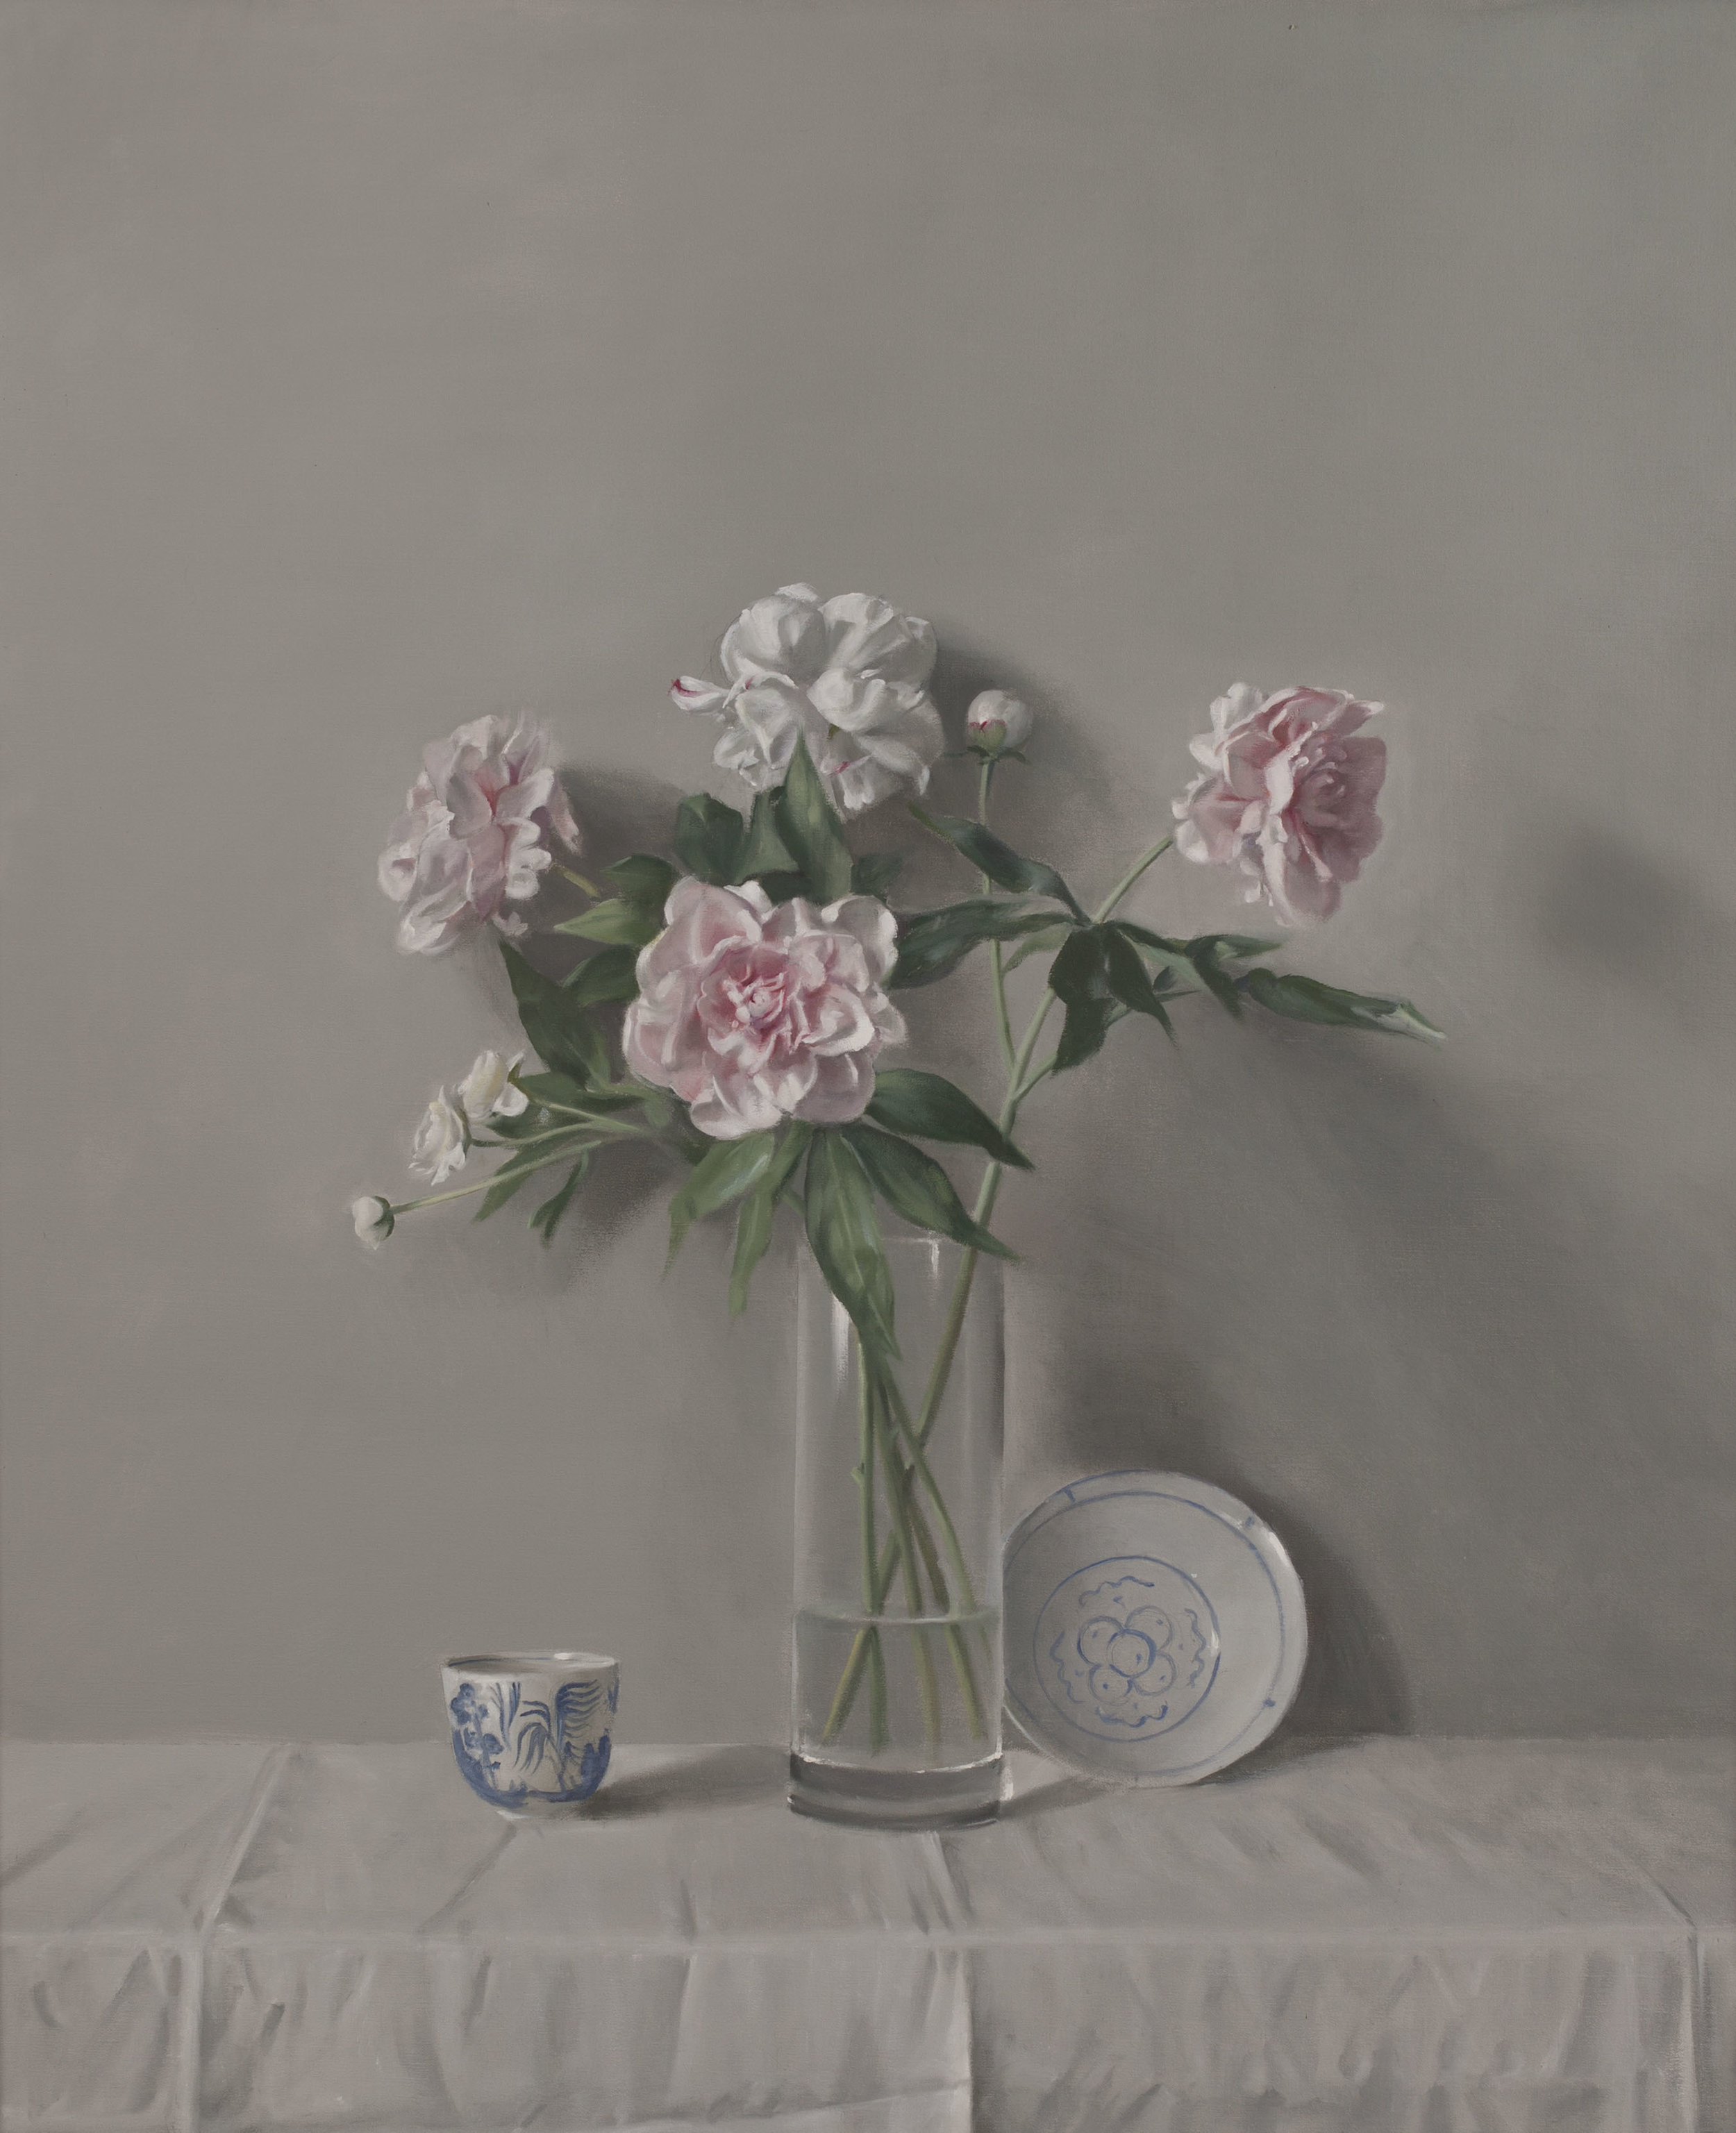 Raymond Han  (1931-2017)  Peonies with Blue and White China , 2004 Oil on linen 48 x 40 inches 121.9 x 101.6 cm